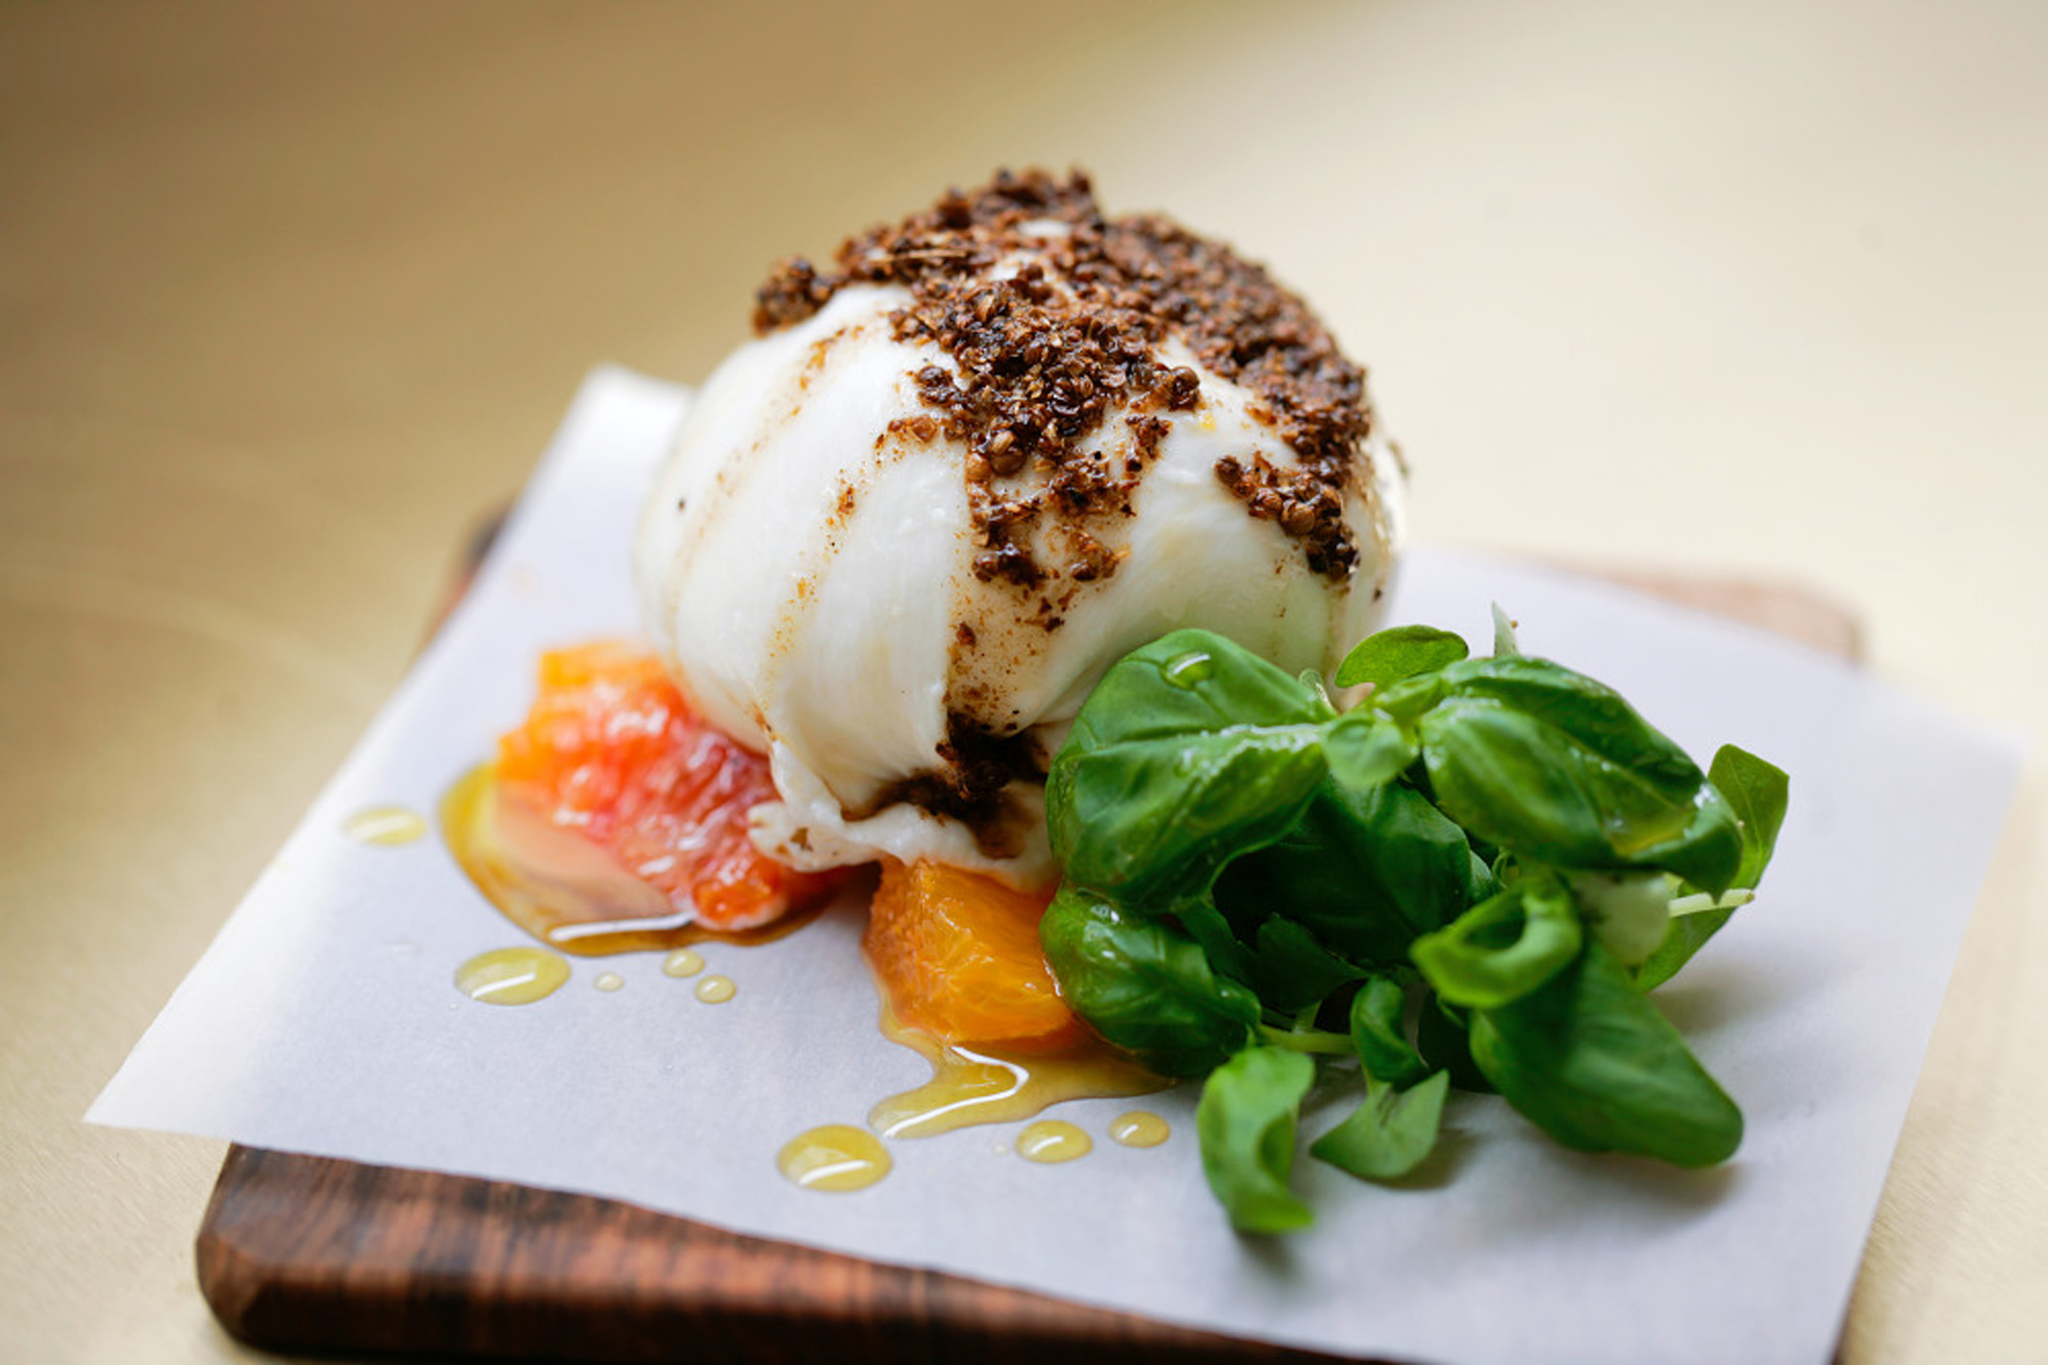 Burrata with Miyagama and coriander seeds at NOPI